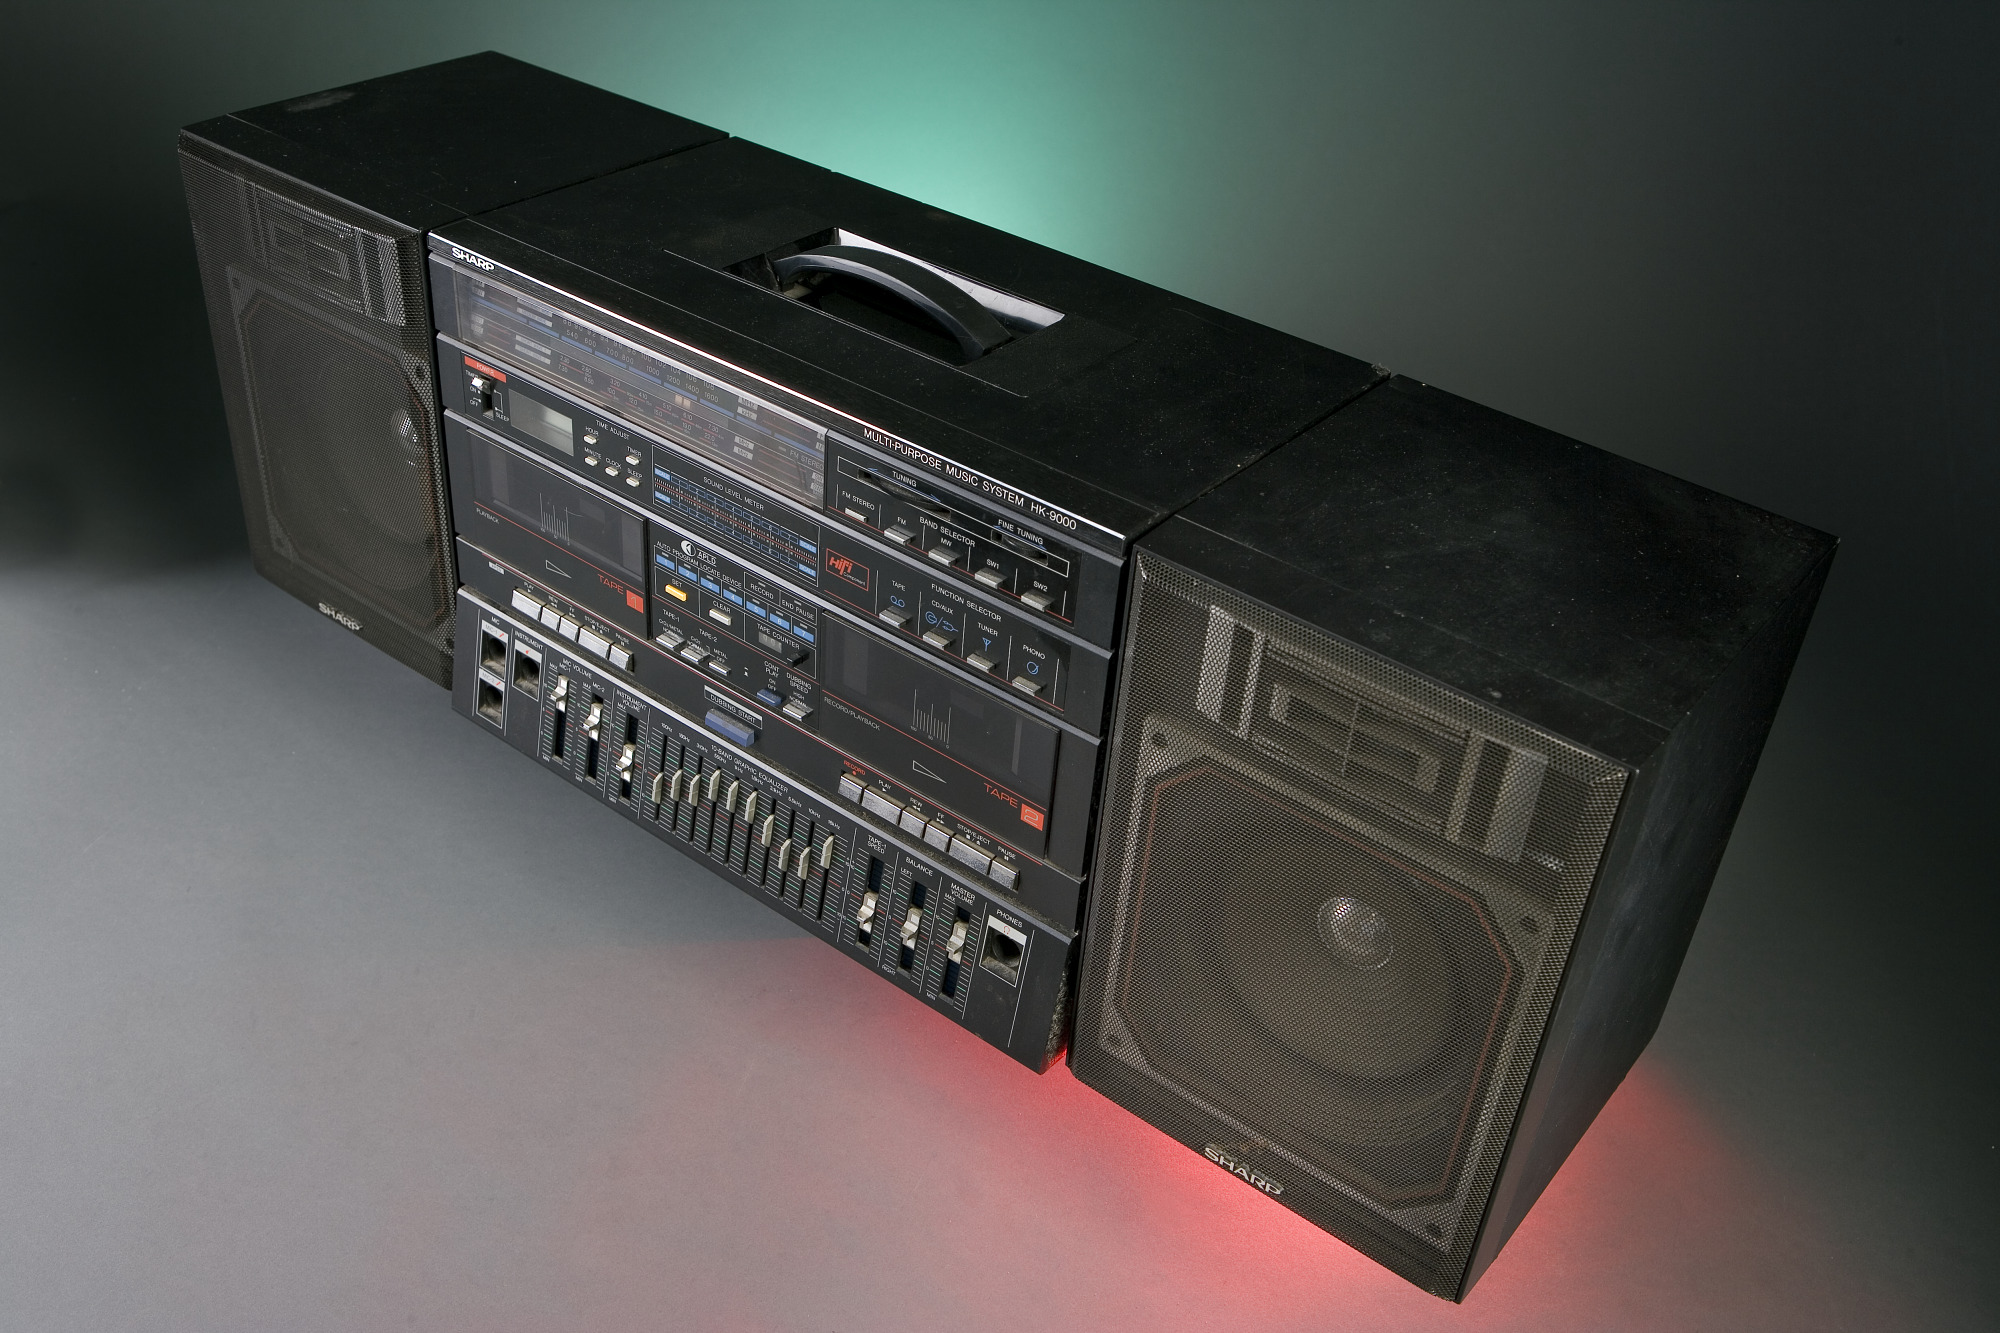 images for Boombox, used by Fab 5 Freddy